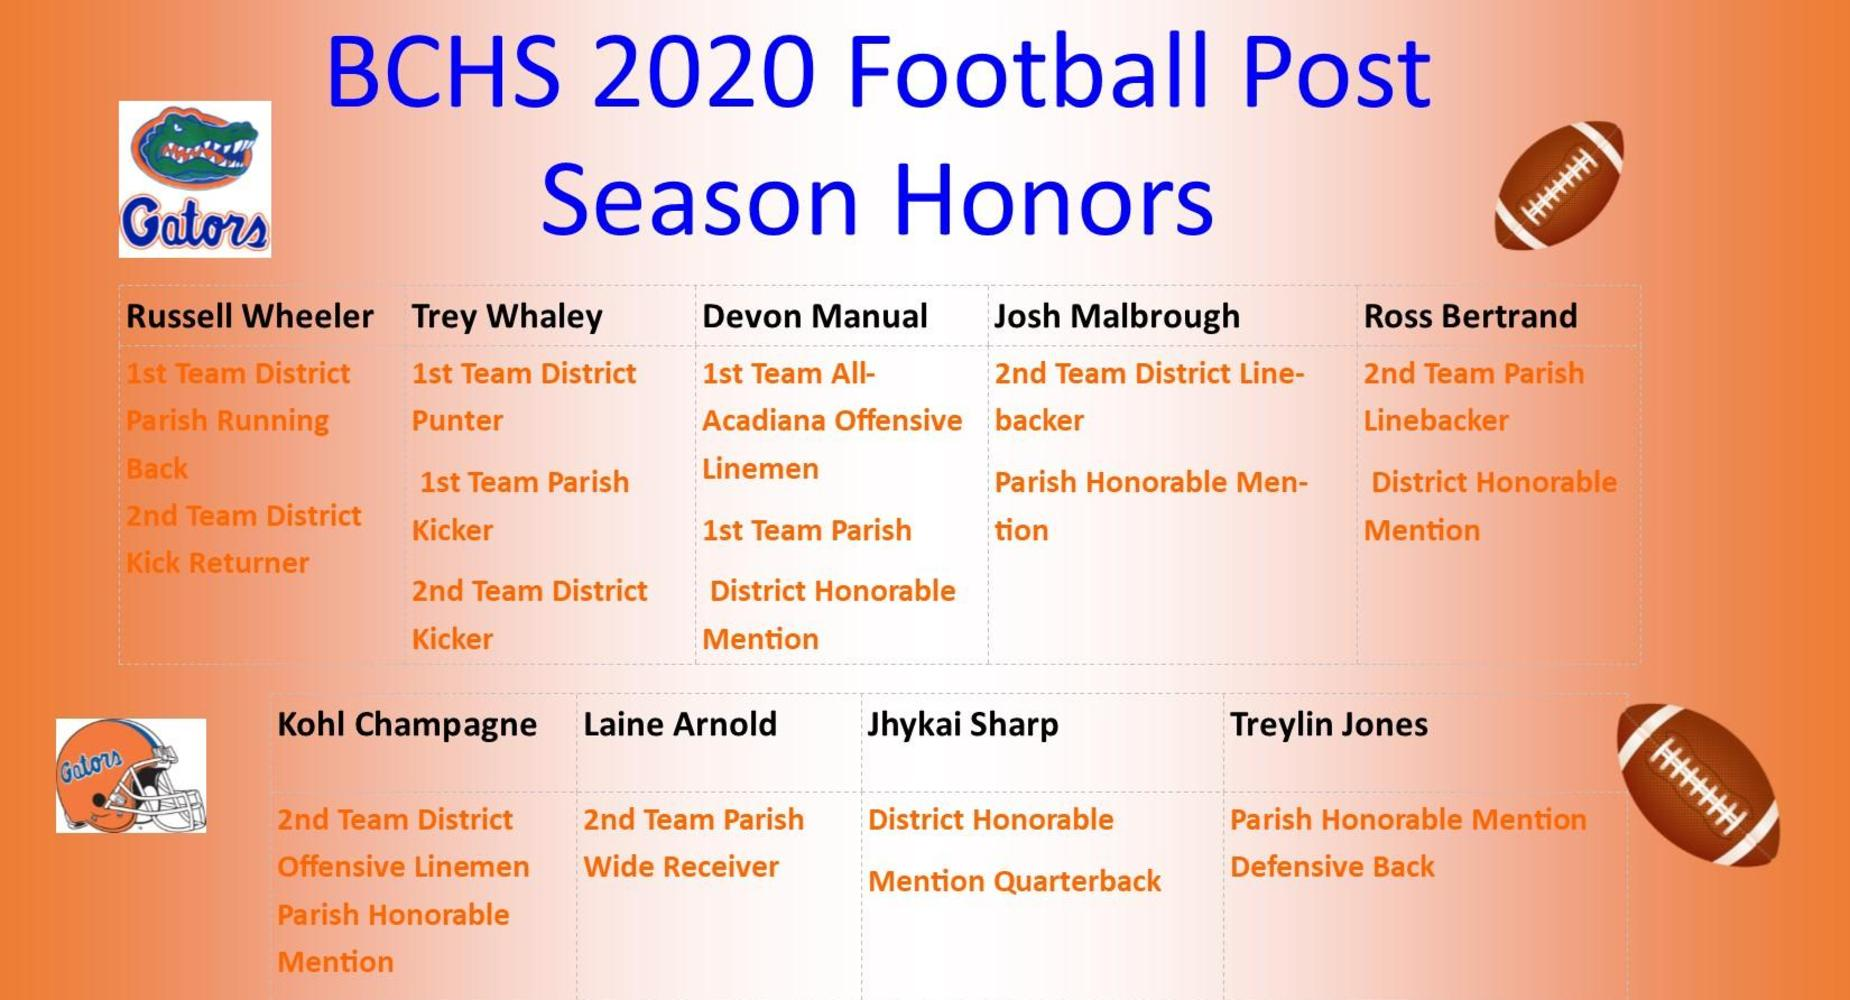 BCHS 20-20 Football Season Honors